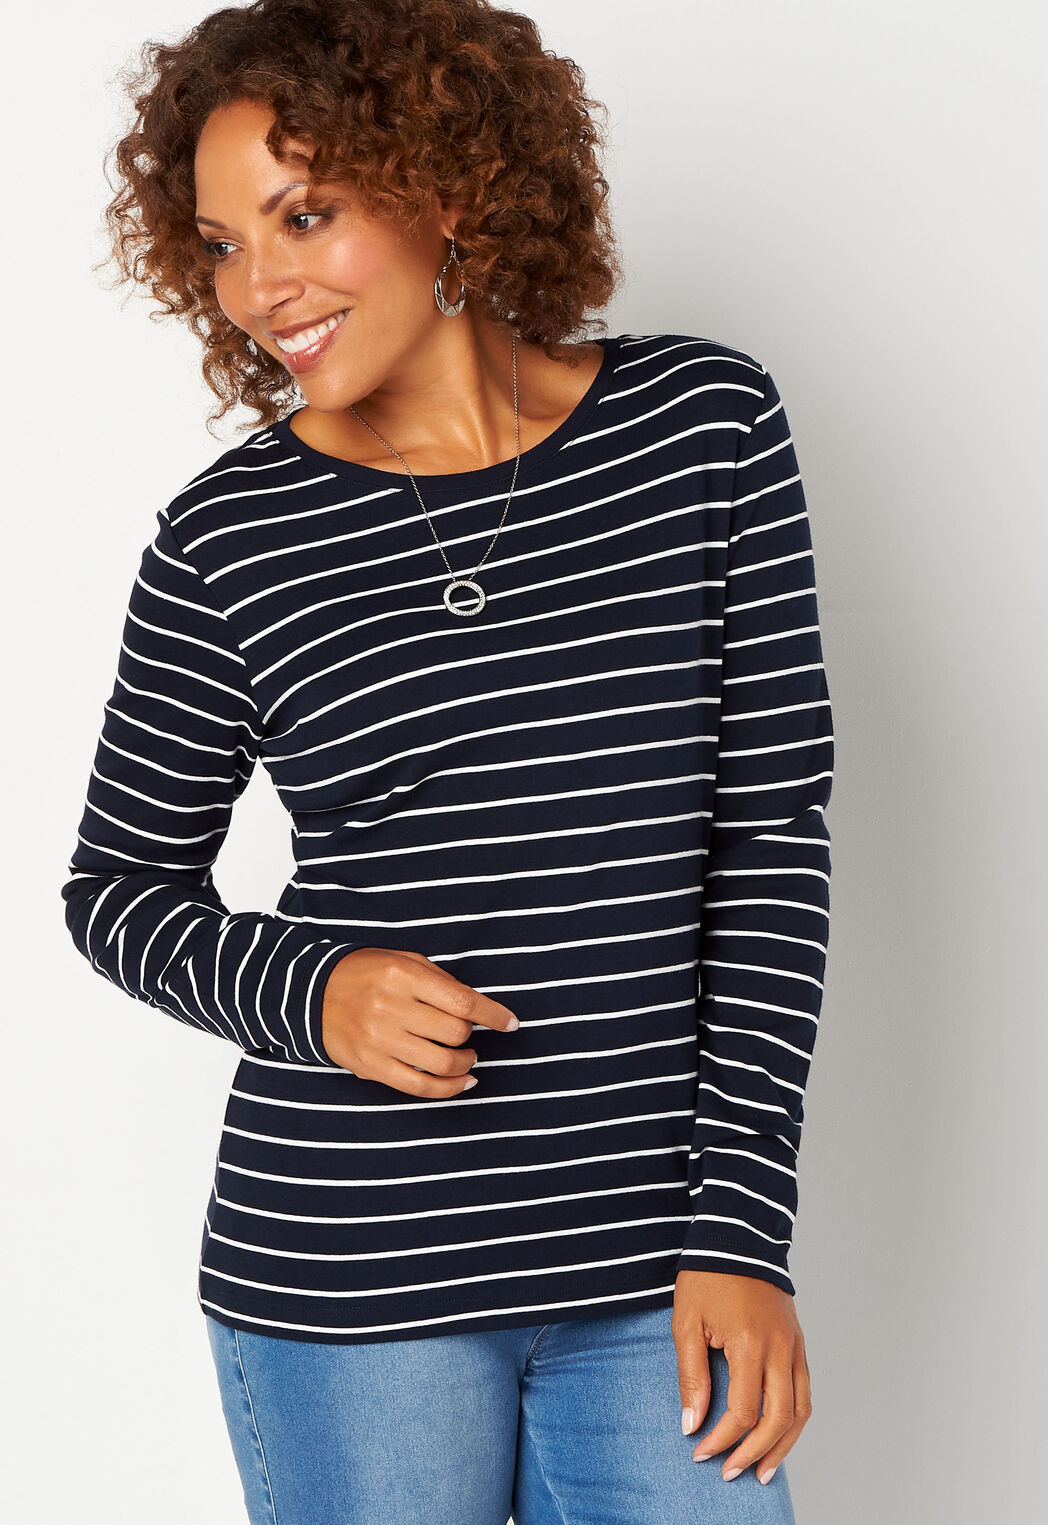 cd0d689567e ... Tops Long Sleeve Stripe Essential Crewneck Tee. add to wish list · add  to wish list